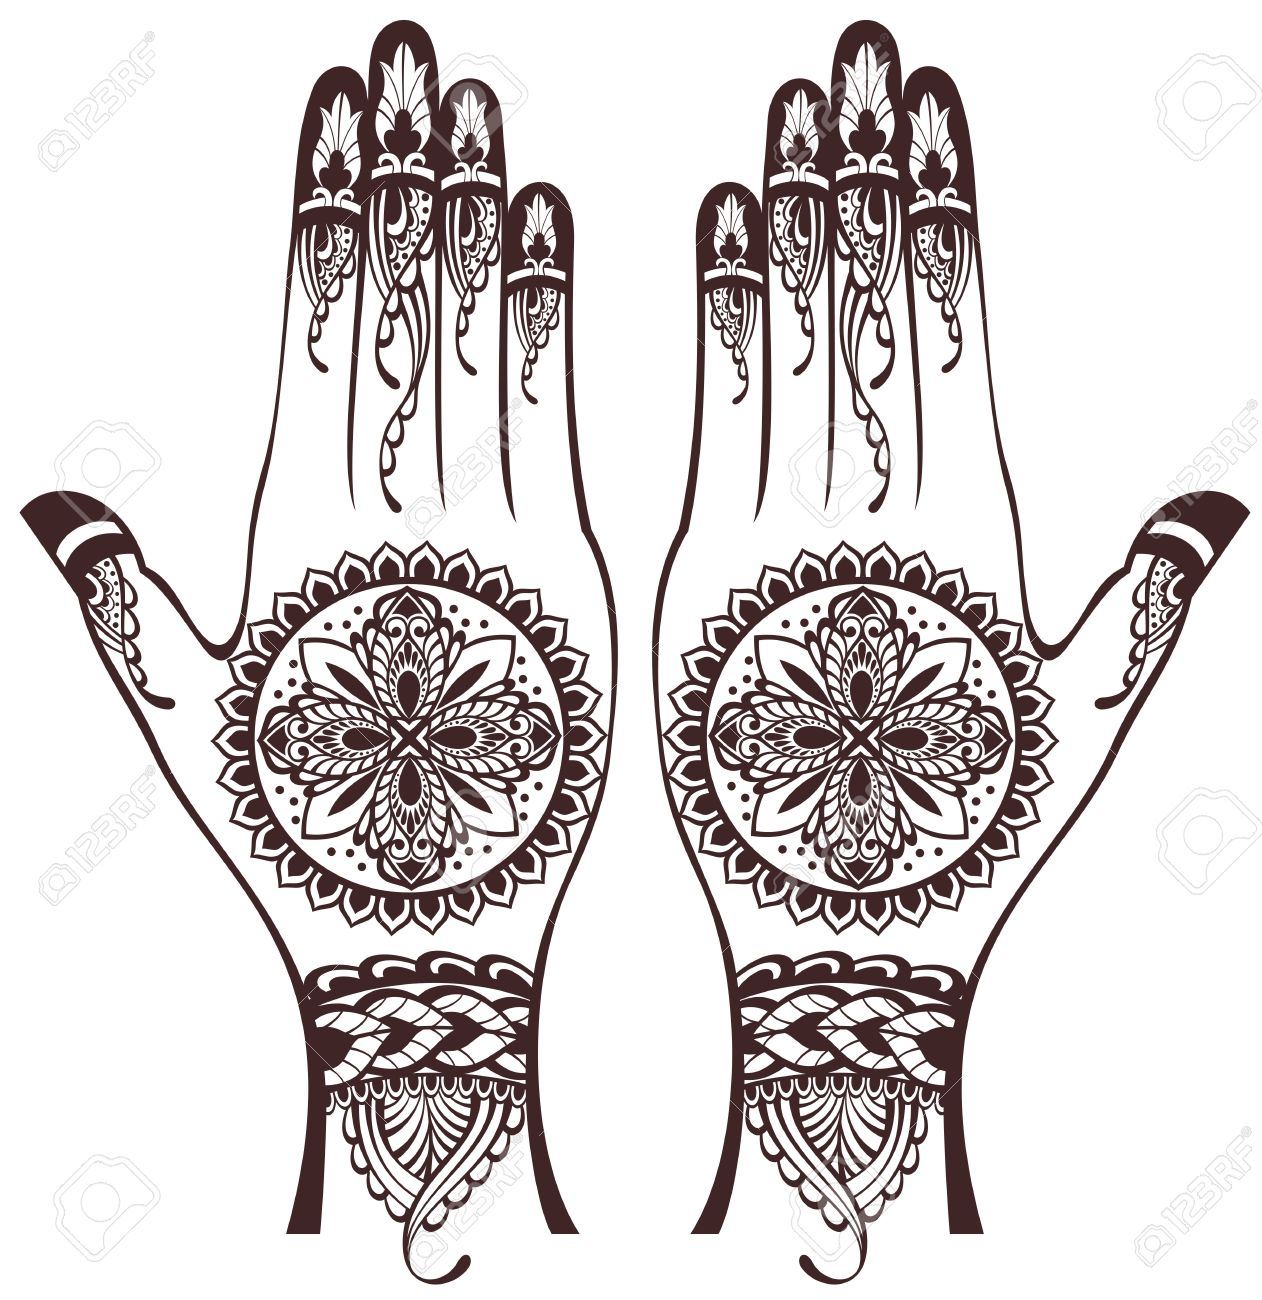 vector illustration of hands with henna tattoos royalty free rh 123rf com Adult Coloring Vector Henna Design Cards